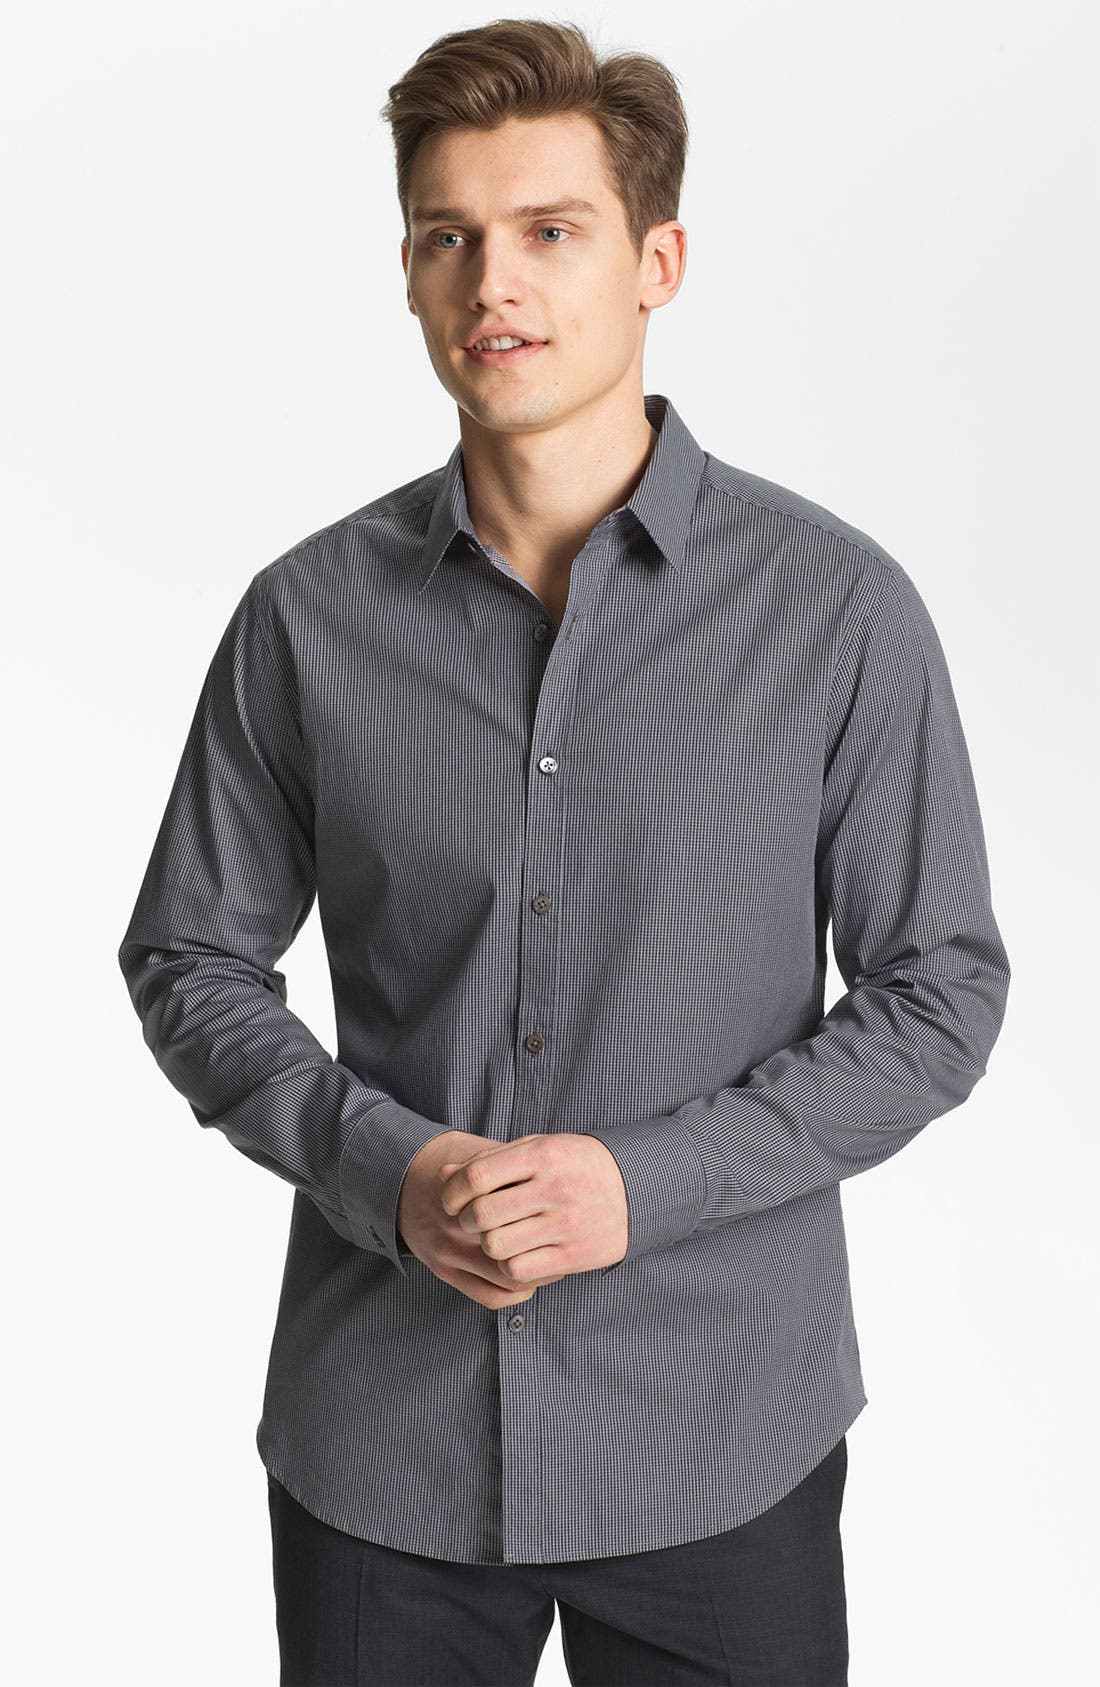 Alternate Image 1 Selected - Theory 'Zack PS. Lorone' Trim Fit Sport Shirt